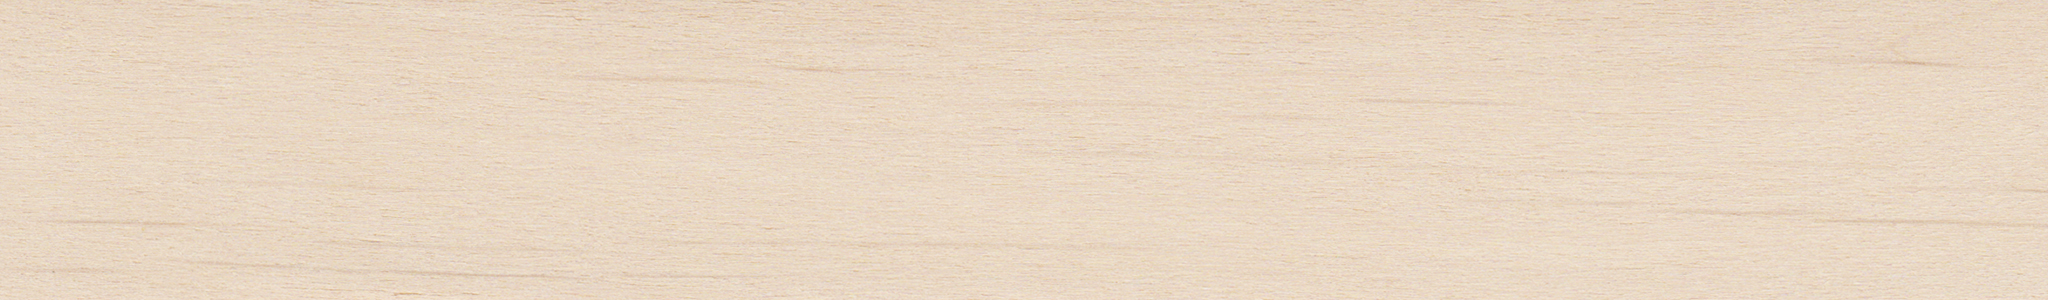 HD 73010 Veneer Edge Alder Fleece